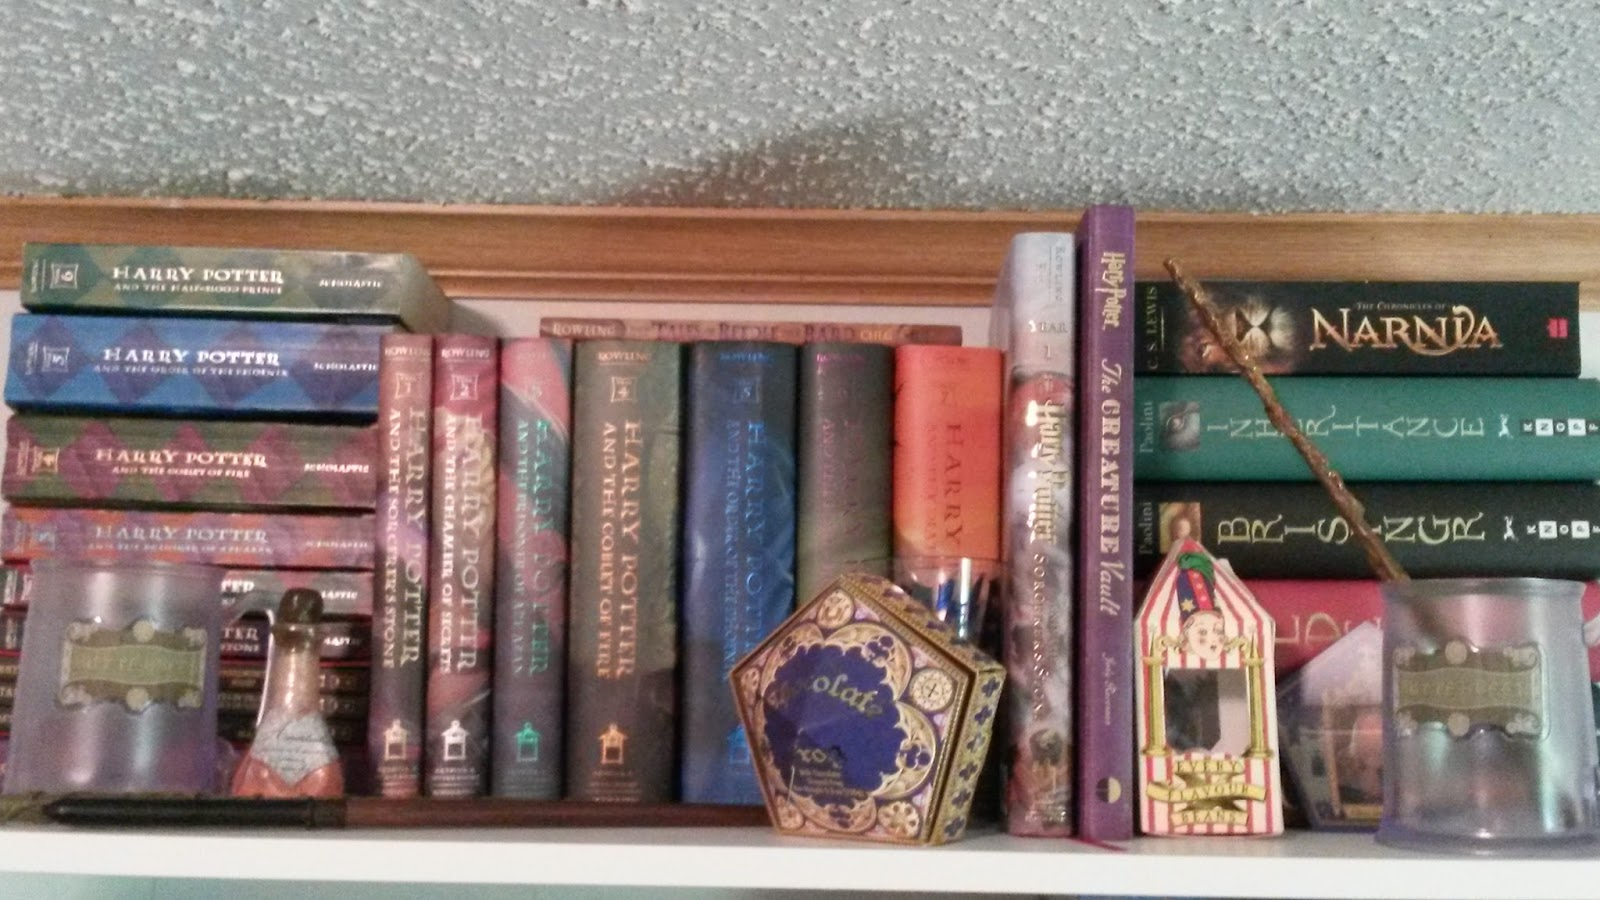 On The Top Shelf I Have Harry Potter Collection Also Some Other Big Fantasy Books That Wouldnt Fit Anywhere Else Sigh